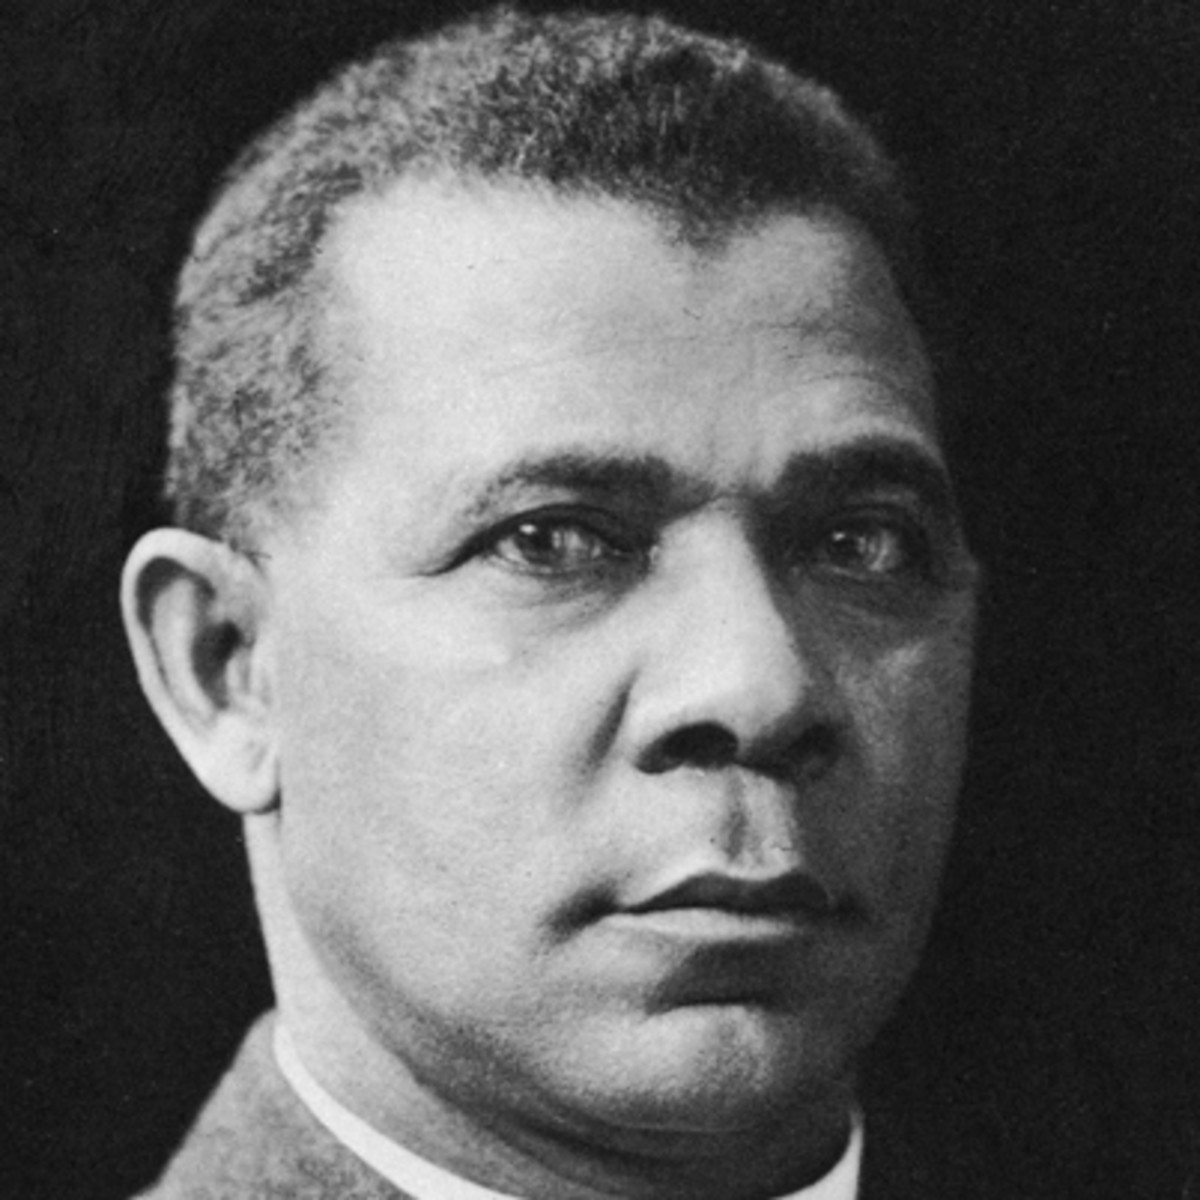 a biography of booker t washington Booker t washington biography booker t washington (1856 - november 14, 1915) was a leading african-american leader and intellectual of the late nineteenth and early twentieth century he founded an educational establishment in alabama and promoted a philosophy of economic self-reliance and self-improvement for the black population.